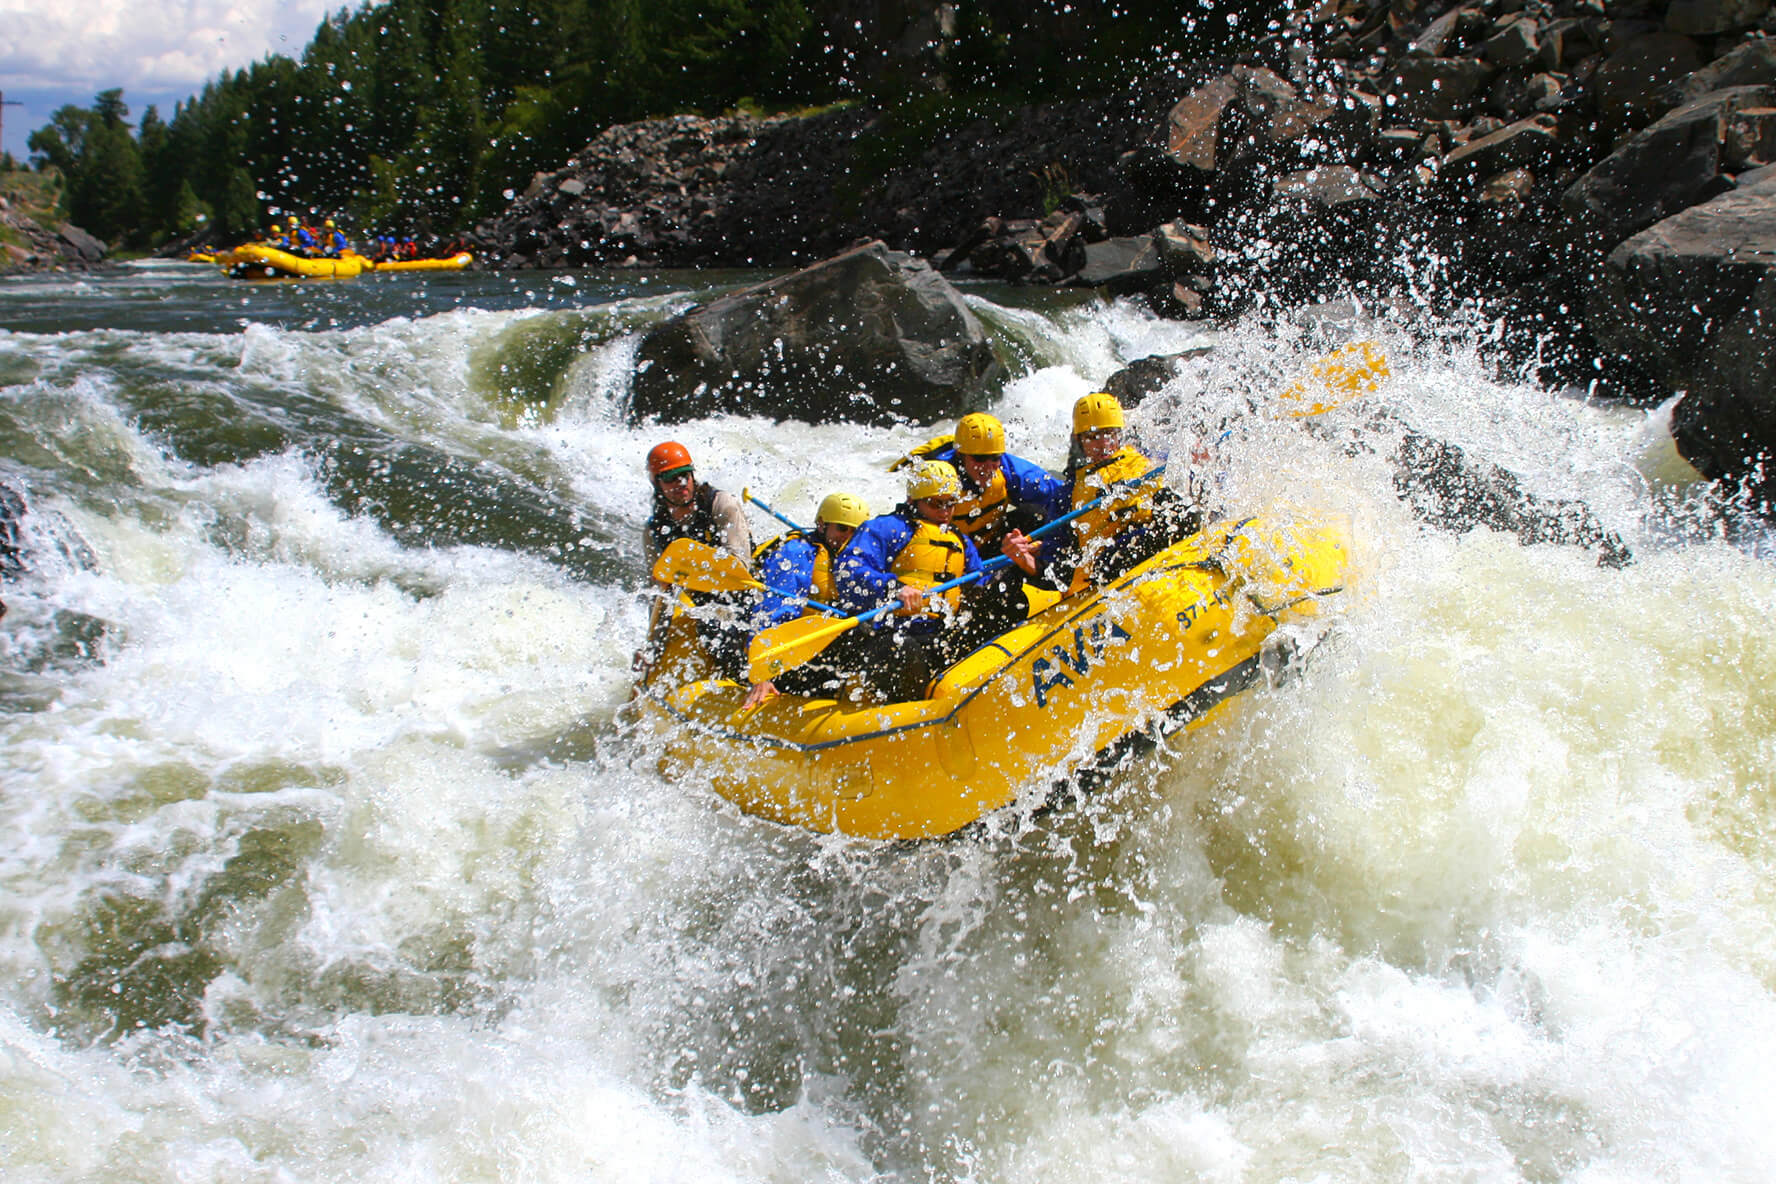 river rafting Rafting america will help you find the best white water rafting trips and vacations visit us today to get started on planning the ultimate rafting trip.